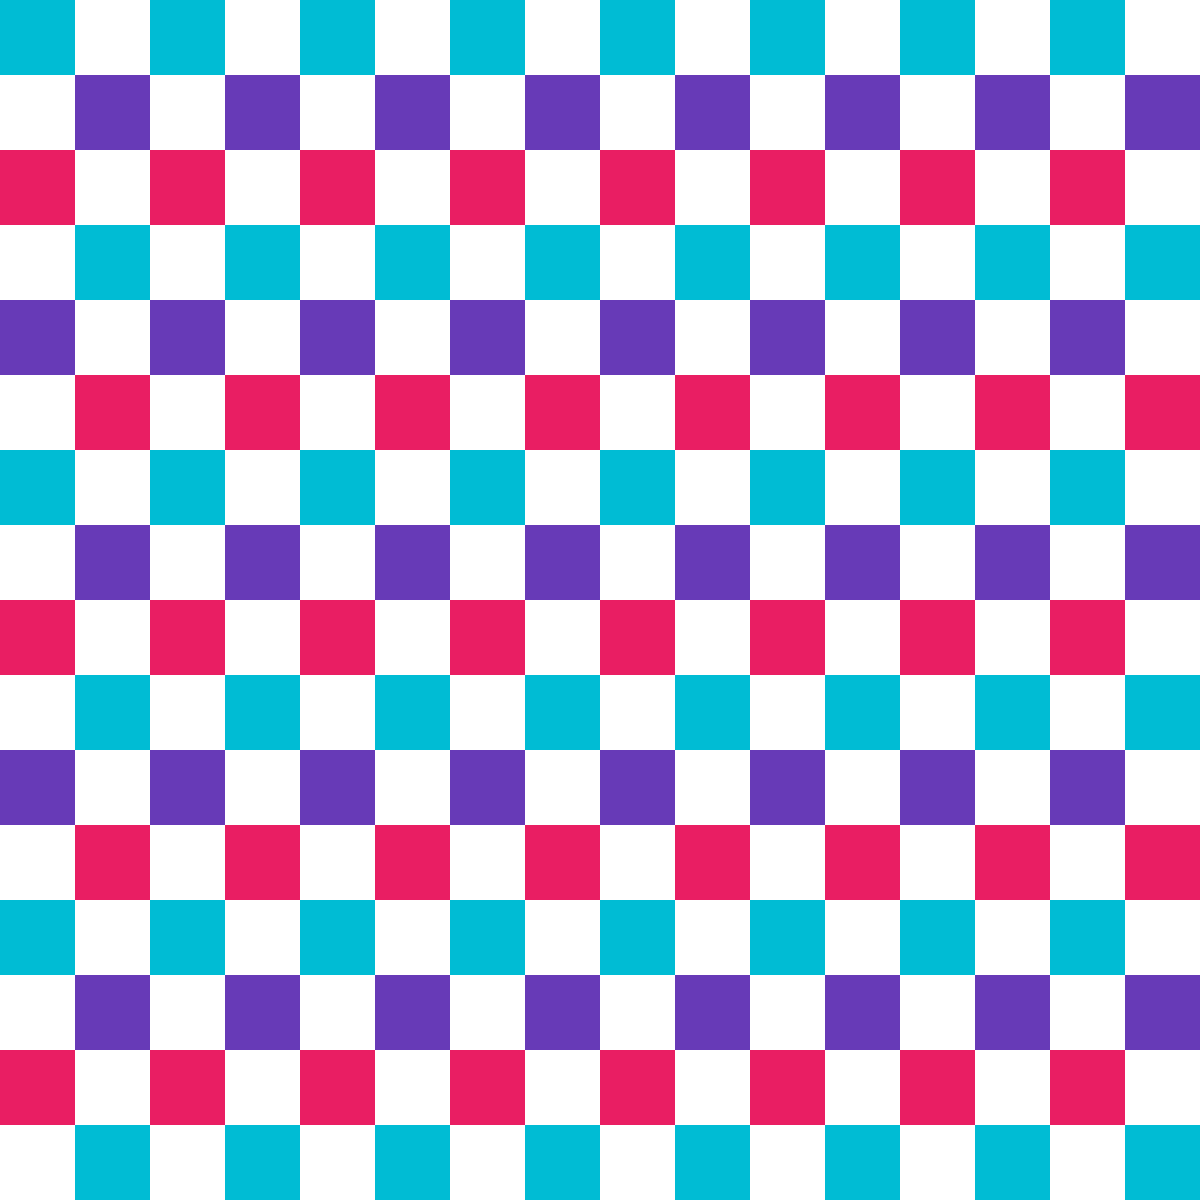 Checker Board by 2026MarbleC